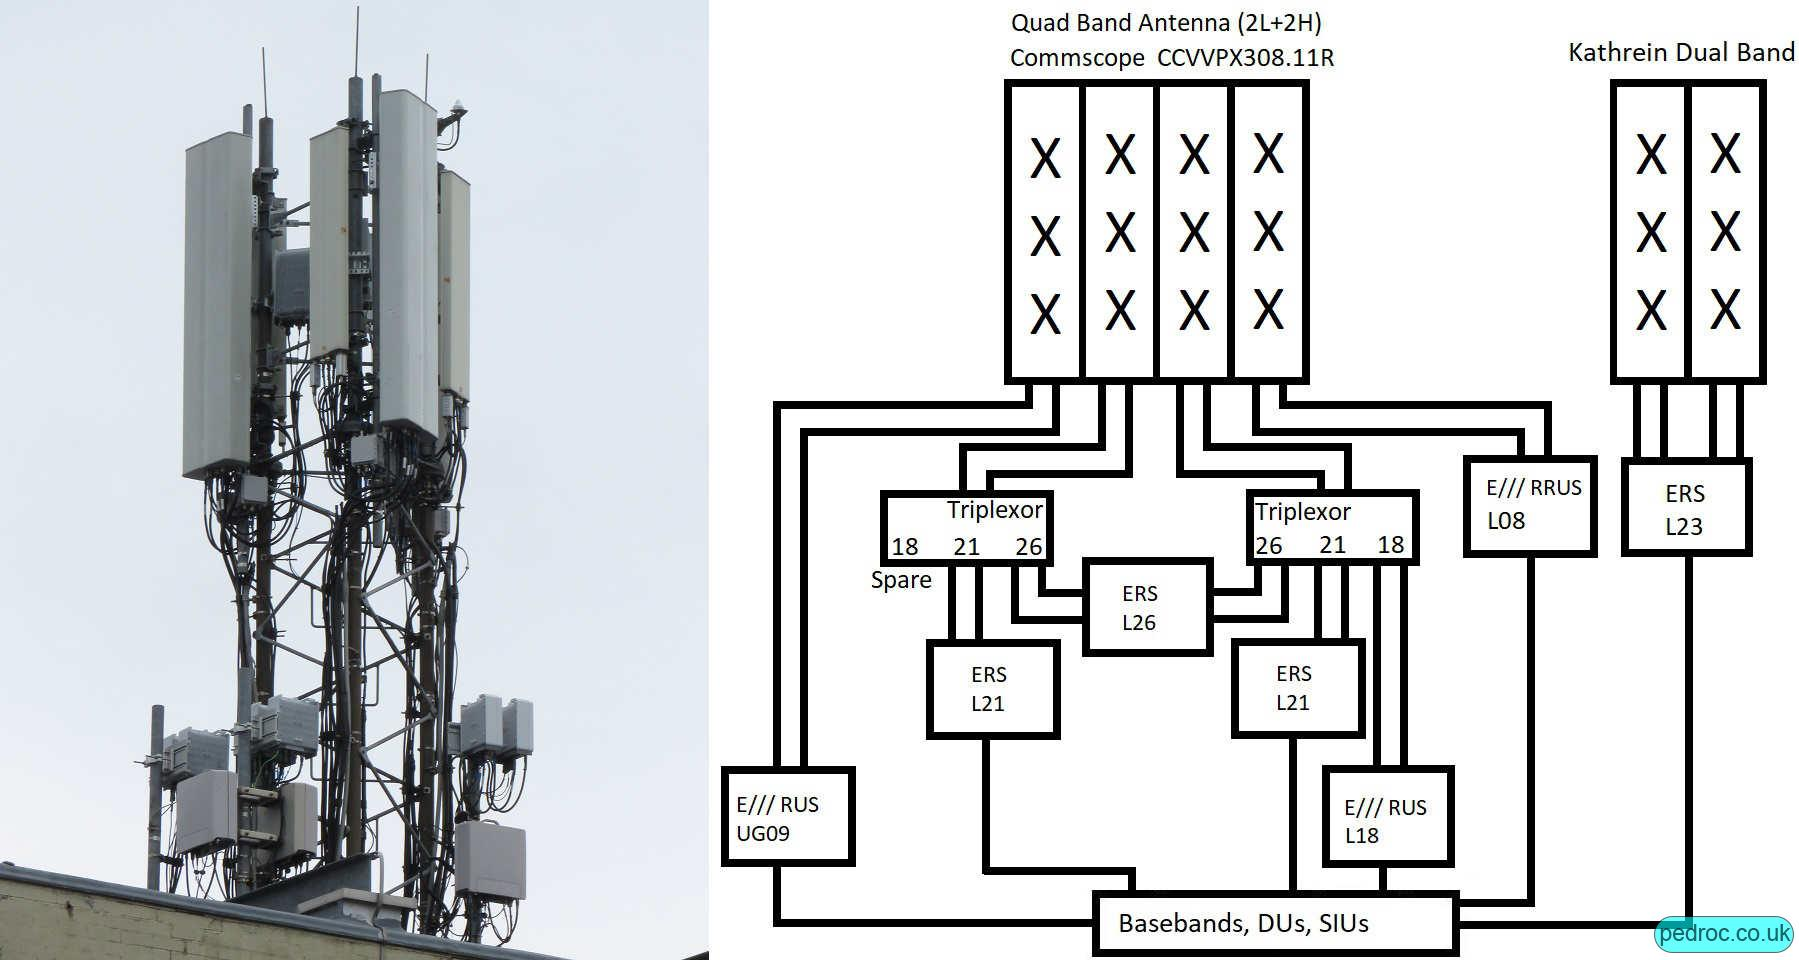 Beacon 2 build with dual 2100MHz Ericsson Radio System (ERS) per sector, alongside ERS for O2 2300MHz, RRUS11 for 800MHz. Triplexors on the quad band Commscope CCVVPX308.11R's high ports to enable the 1800MHz, dual 2100MHz, 4T4R 2600MHz on four high ports per sector. Kathrein dual band antenna then for O2's 4T4R 2300MHz.